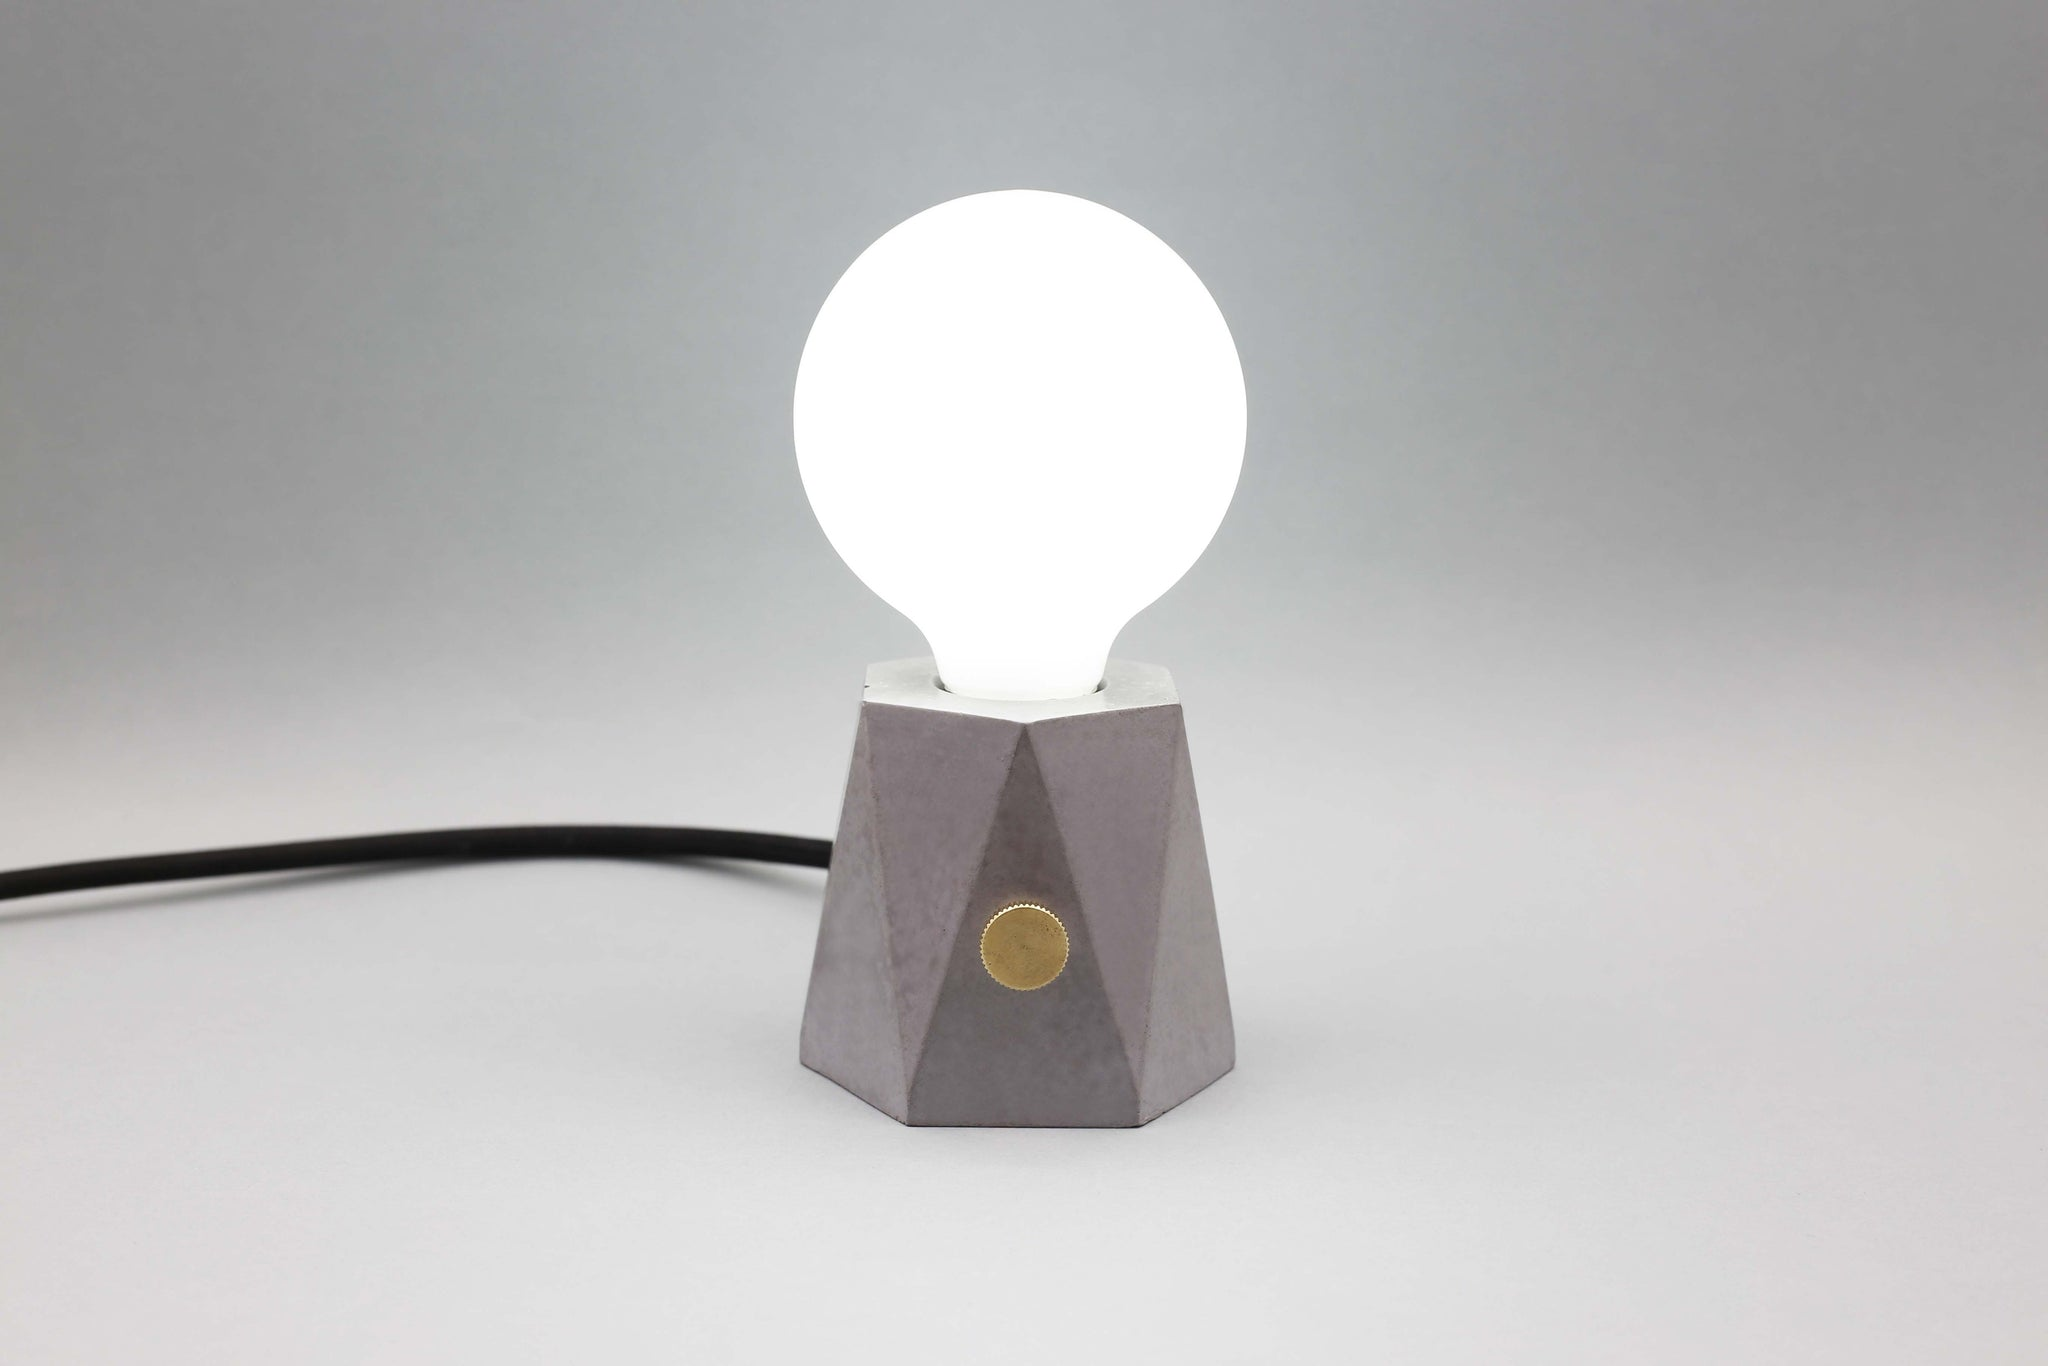 TABLE LAMP . LED . HONG KONG DESIGN . HONG KONG DESIGNER . DESIGN 1 + 1